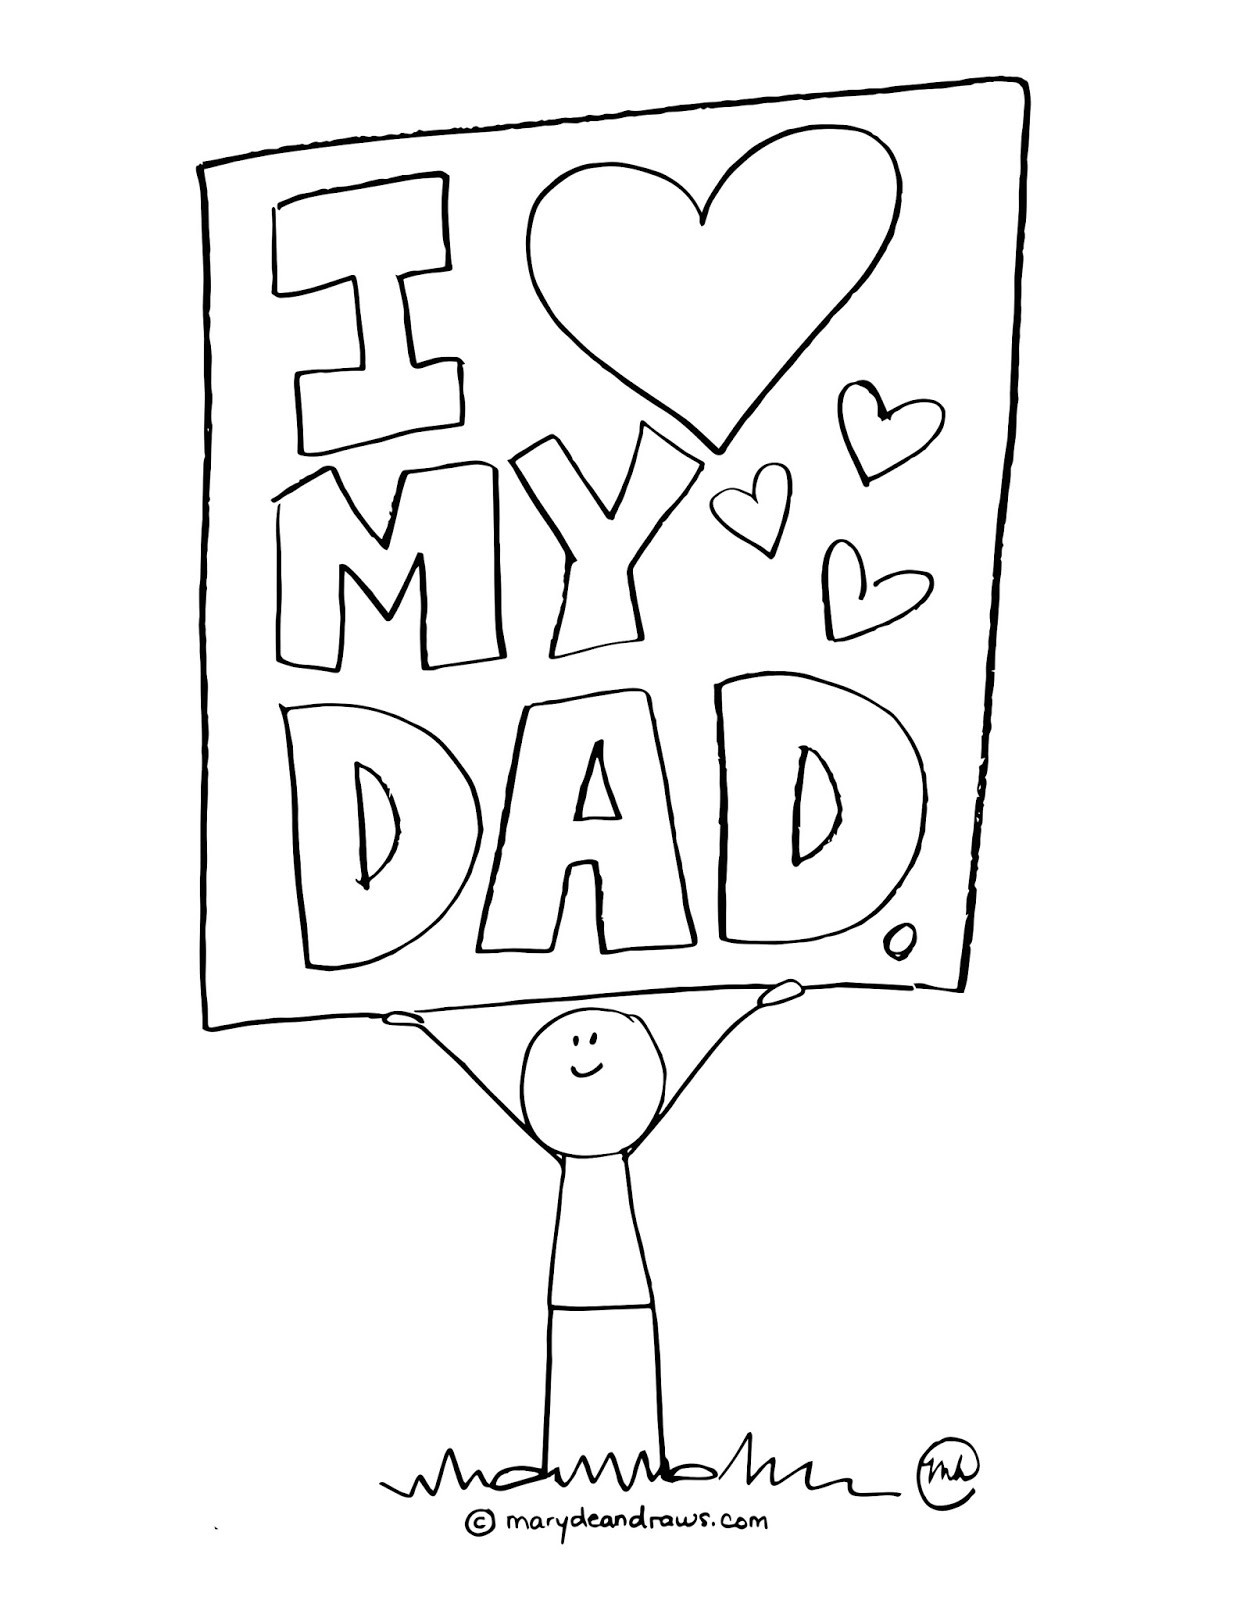 Best ideas about Fathers Day Coloring Pages For Kids . Save or Pin a father s day printable coloring page Marydean Draws Now.